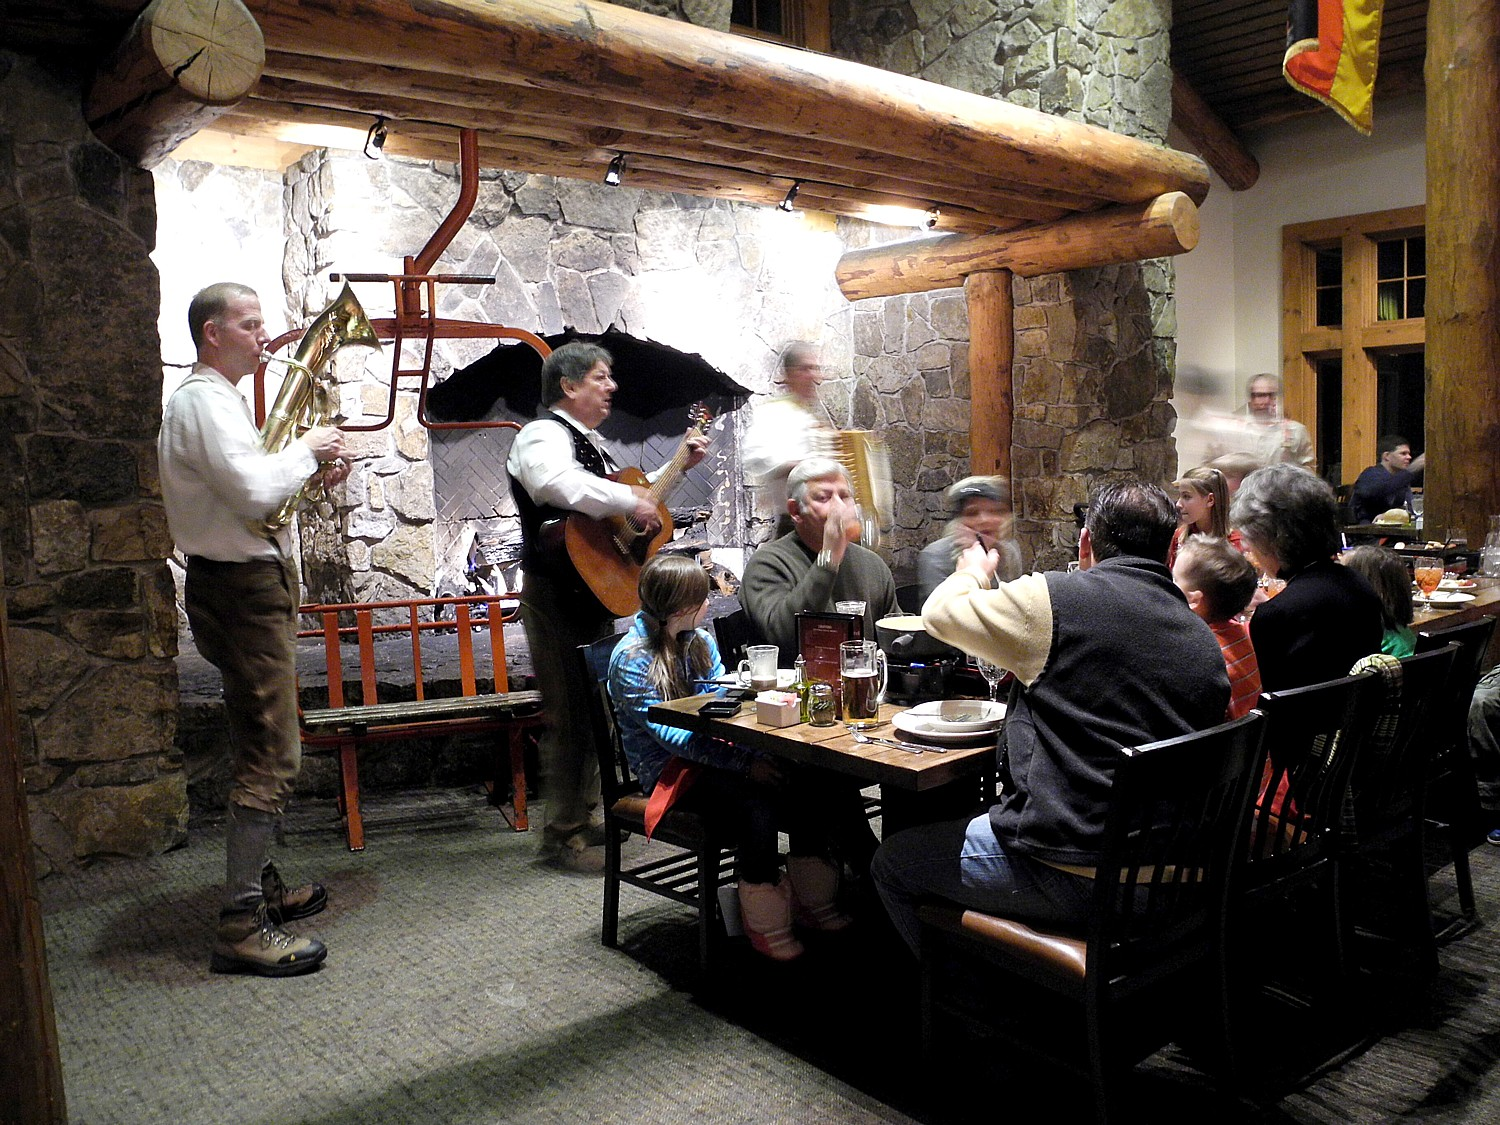 Bavarian Night at Der Fondue atop Keystone Mountain © 2016 Karen Rubin/goingplacesfarandnear.com